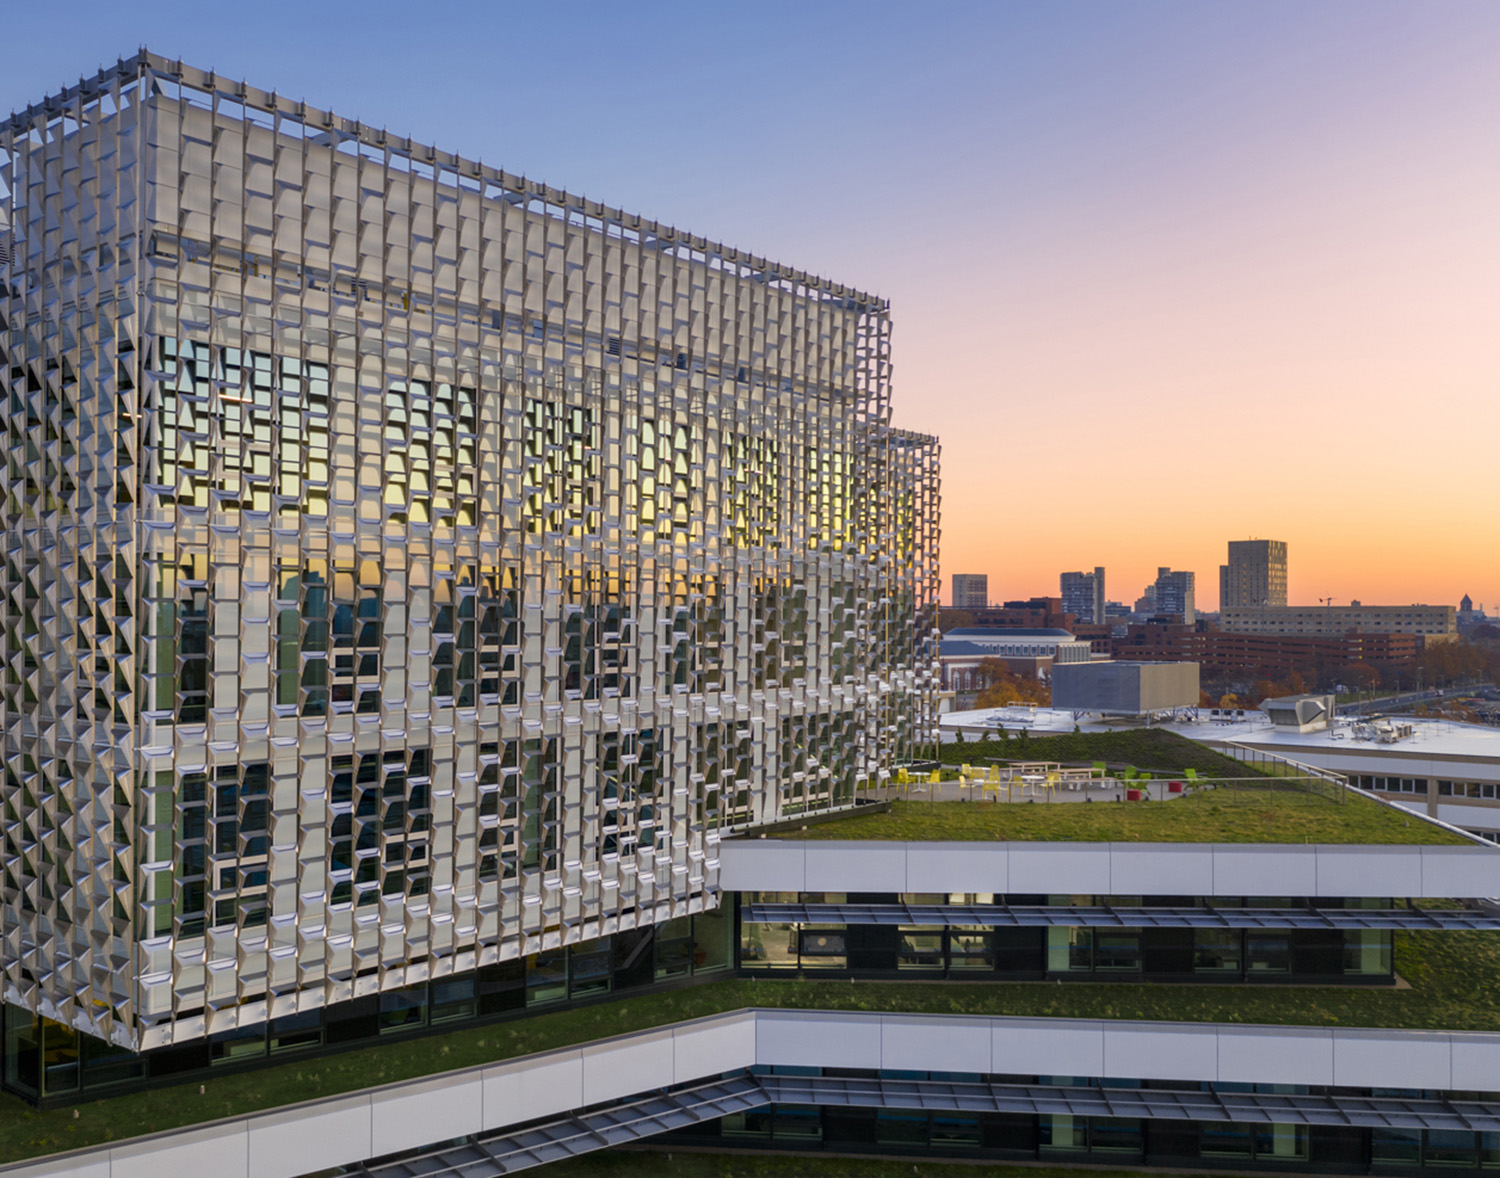 The highly innovative fixed sunshade calibrates the scale of the large volumes, creates an identity for the complex, and plays a crucial role in the efficient energy performance of the building. Brad Feinknopf